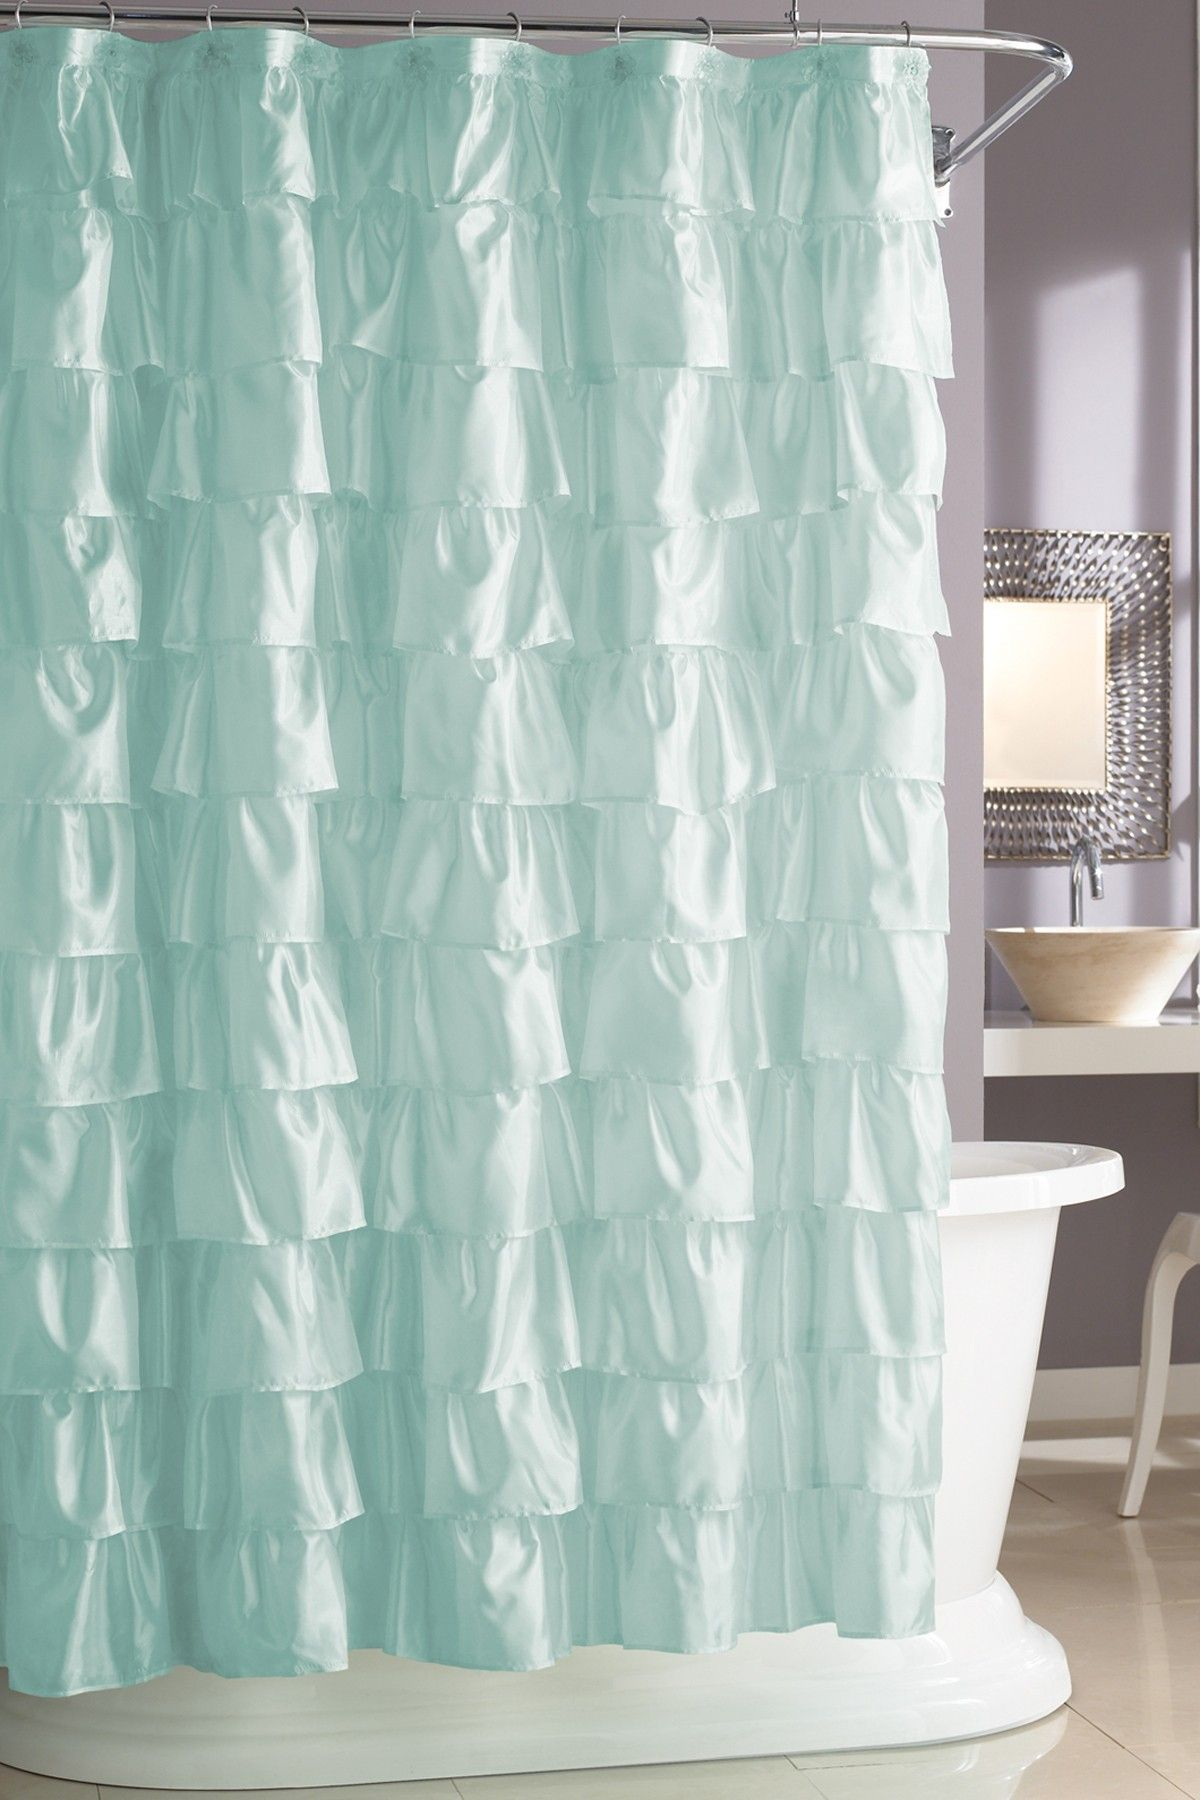 seashore trendy window themed or kitchen full shower nautical valances valance and themes blue beac size gratify silver iron charming fo ideas hald of accessories curtains phenomenal alluring bathroom curtain ocean style theme etsy likable blinds suitable beach